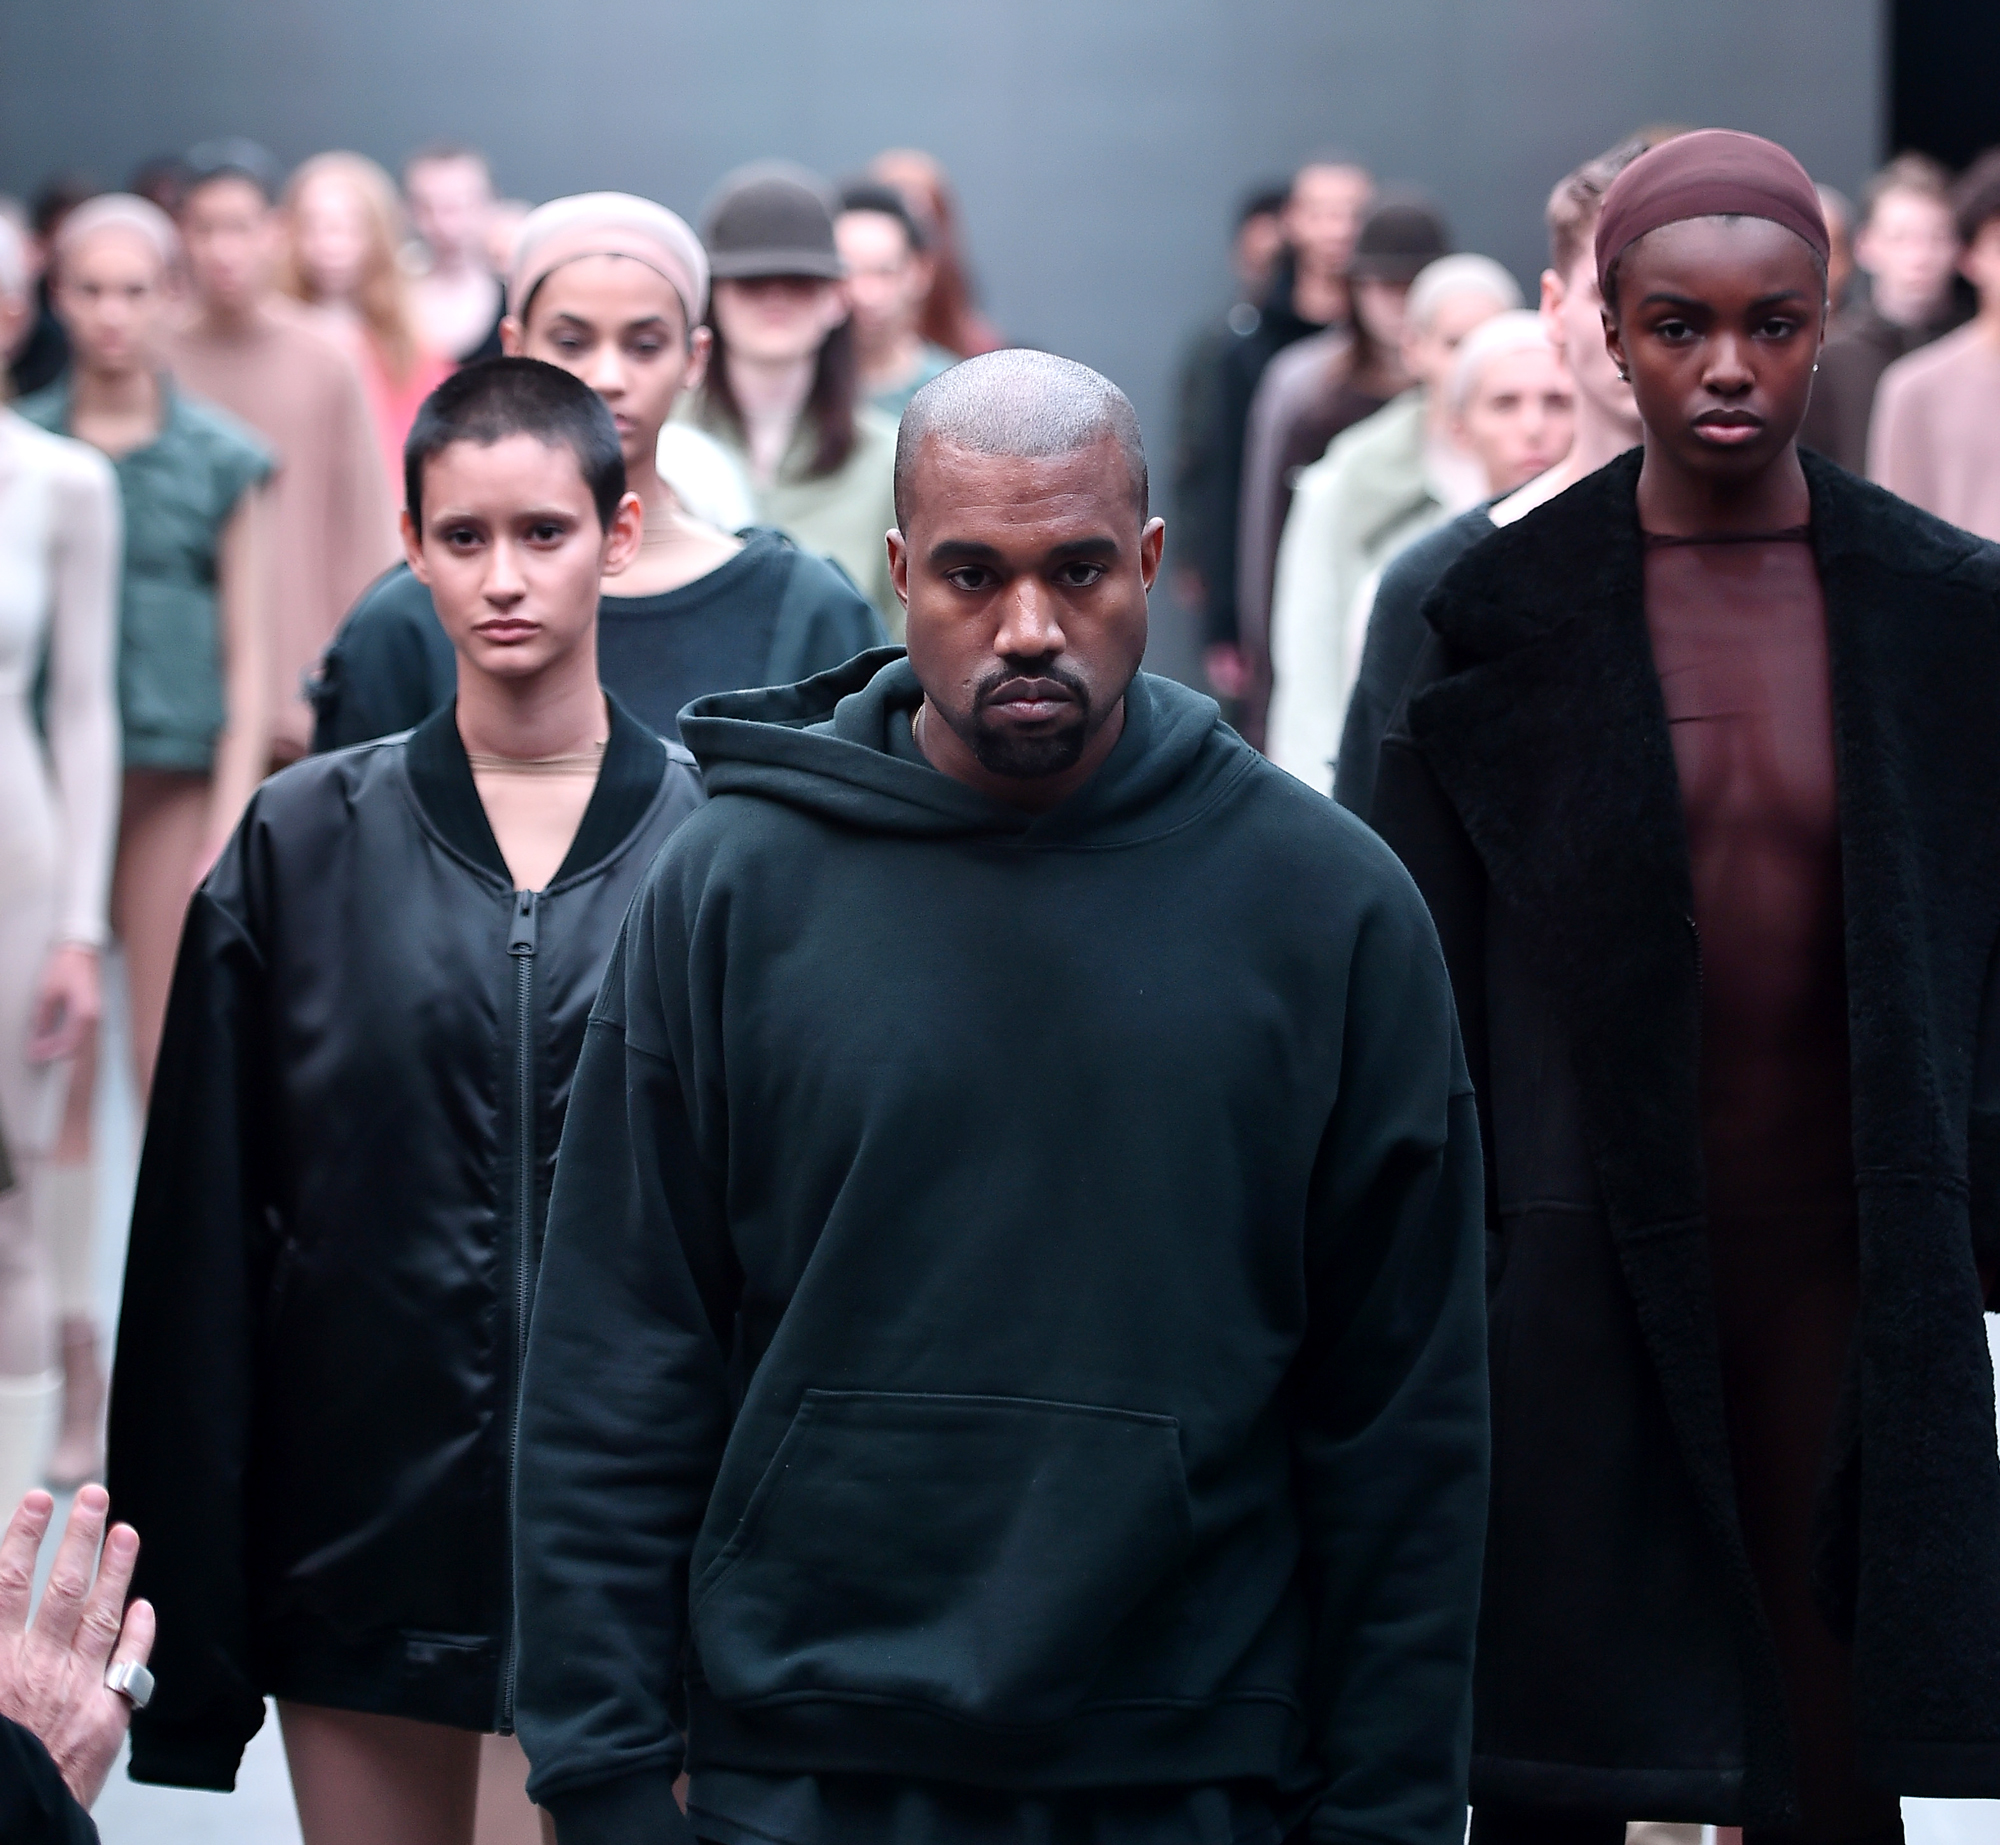 Designers Trolled Fashion - Kanye West